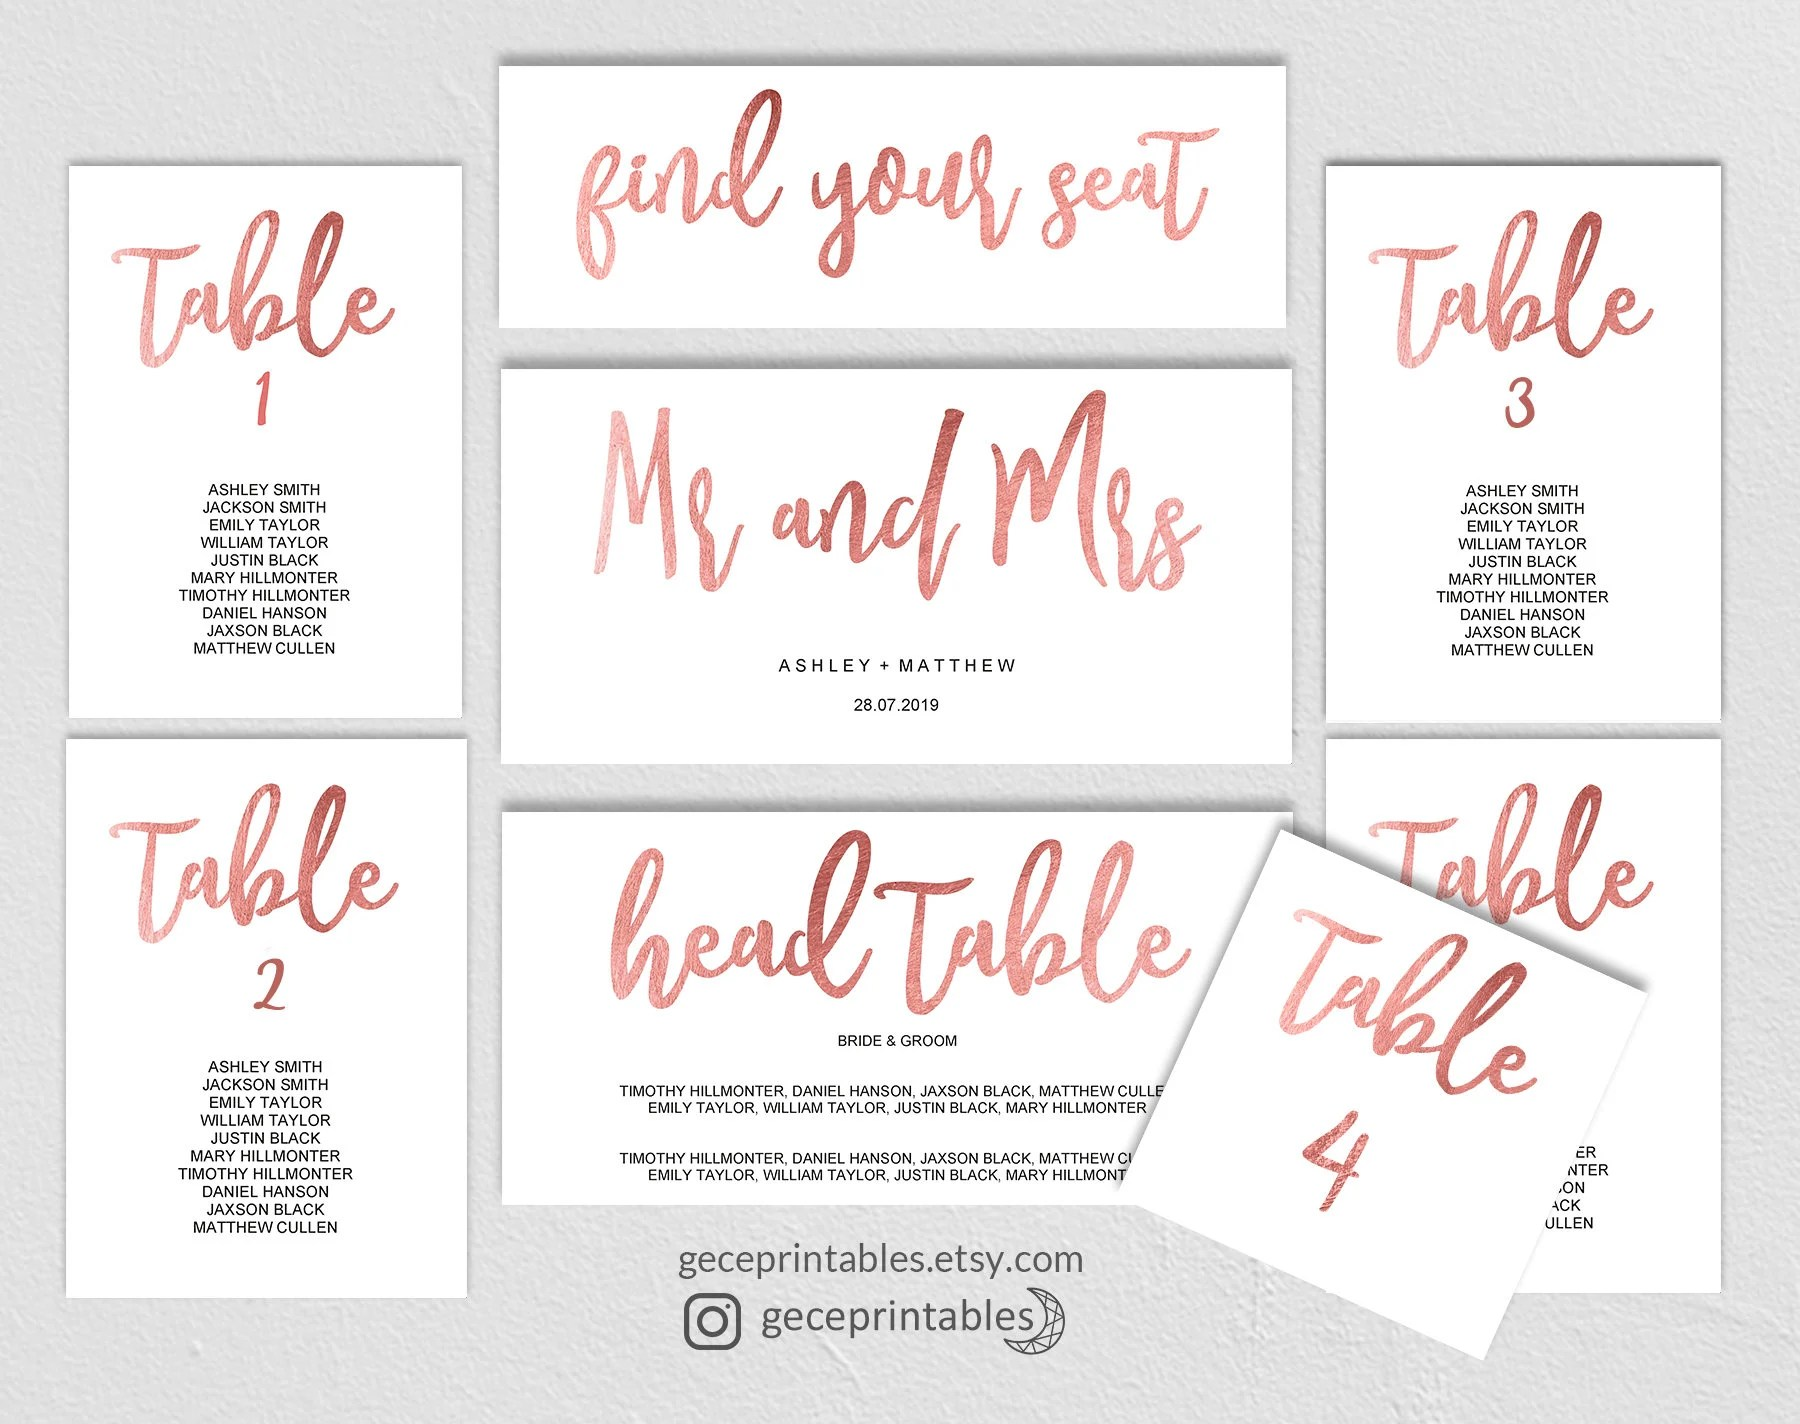 Rose Gold Seating Chart Template, Wedding Printable Seating Plan - printable seating charts